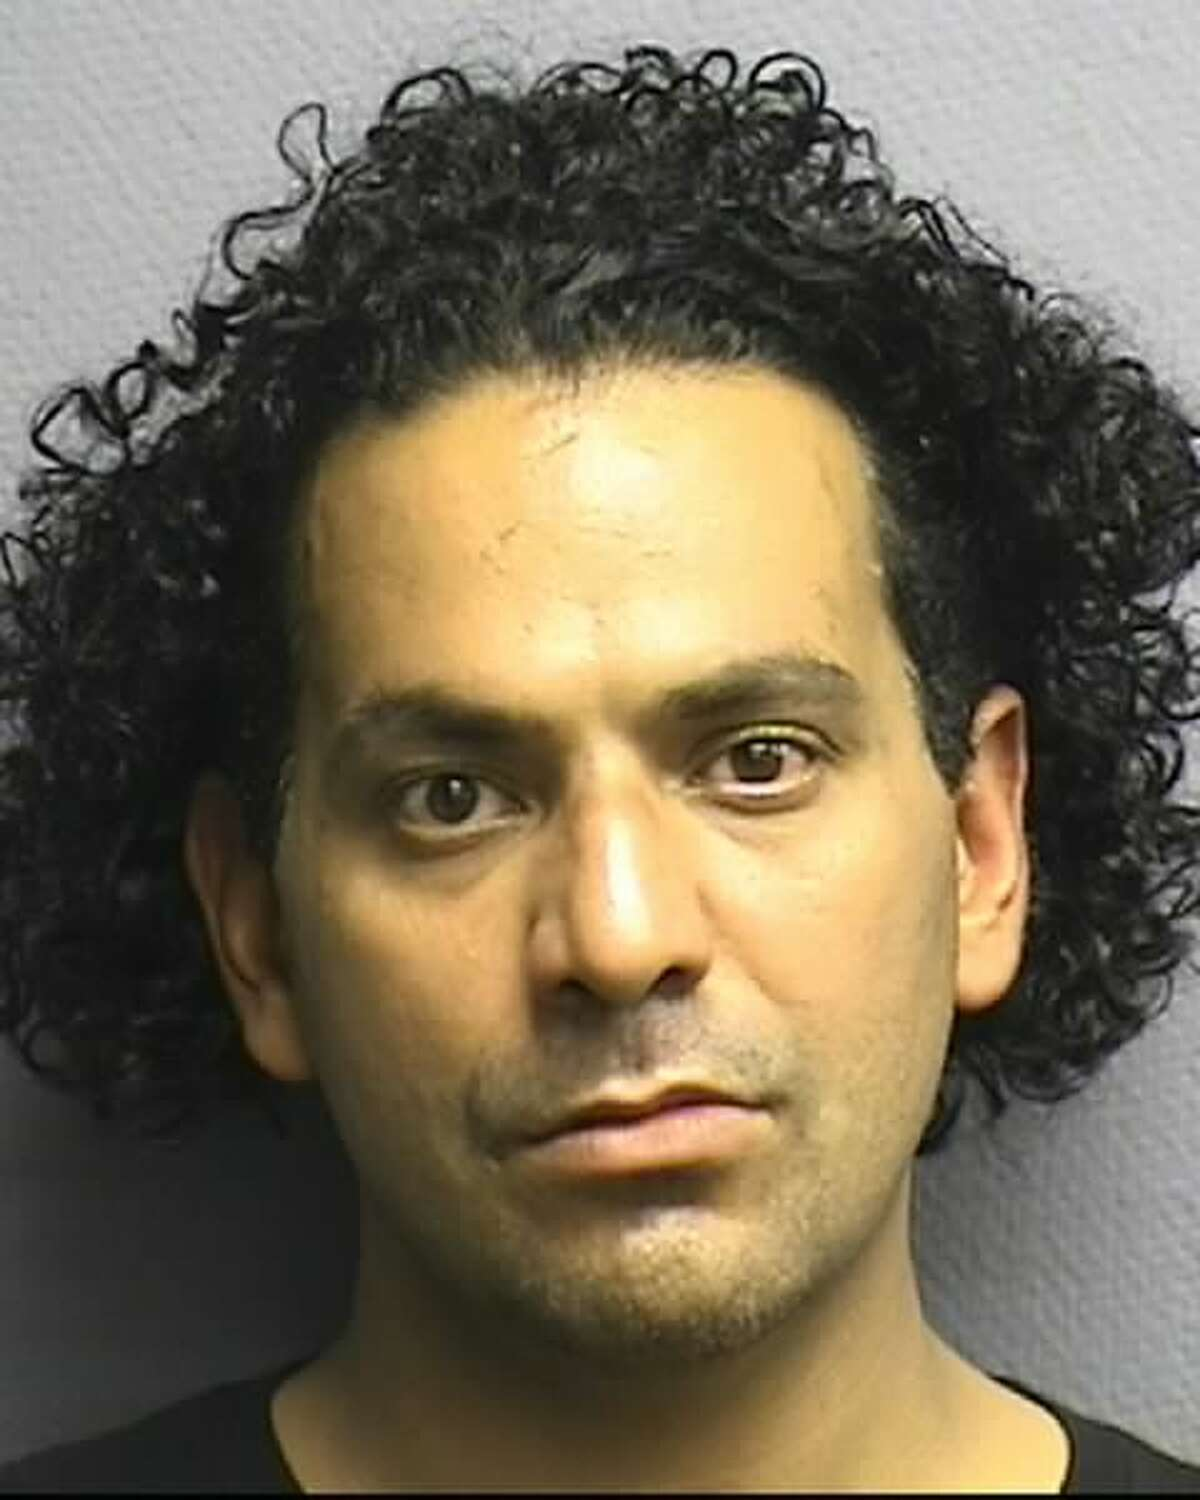 An undated photograph of Matthew W. Dunn, 39. Dunn is accused of assaulting a Lyft driver because of his Middle Eastern heritage. He has since been charged with a hate crime.